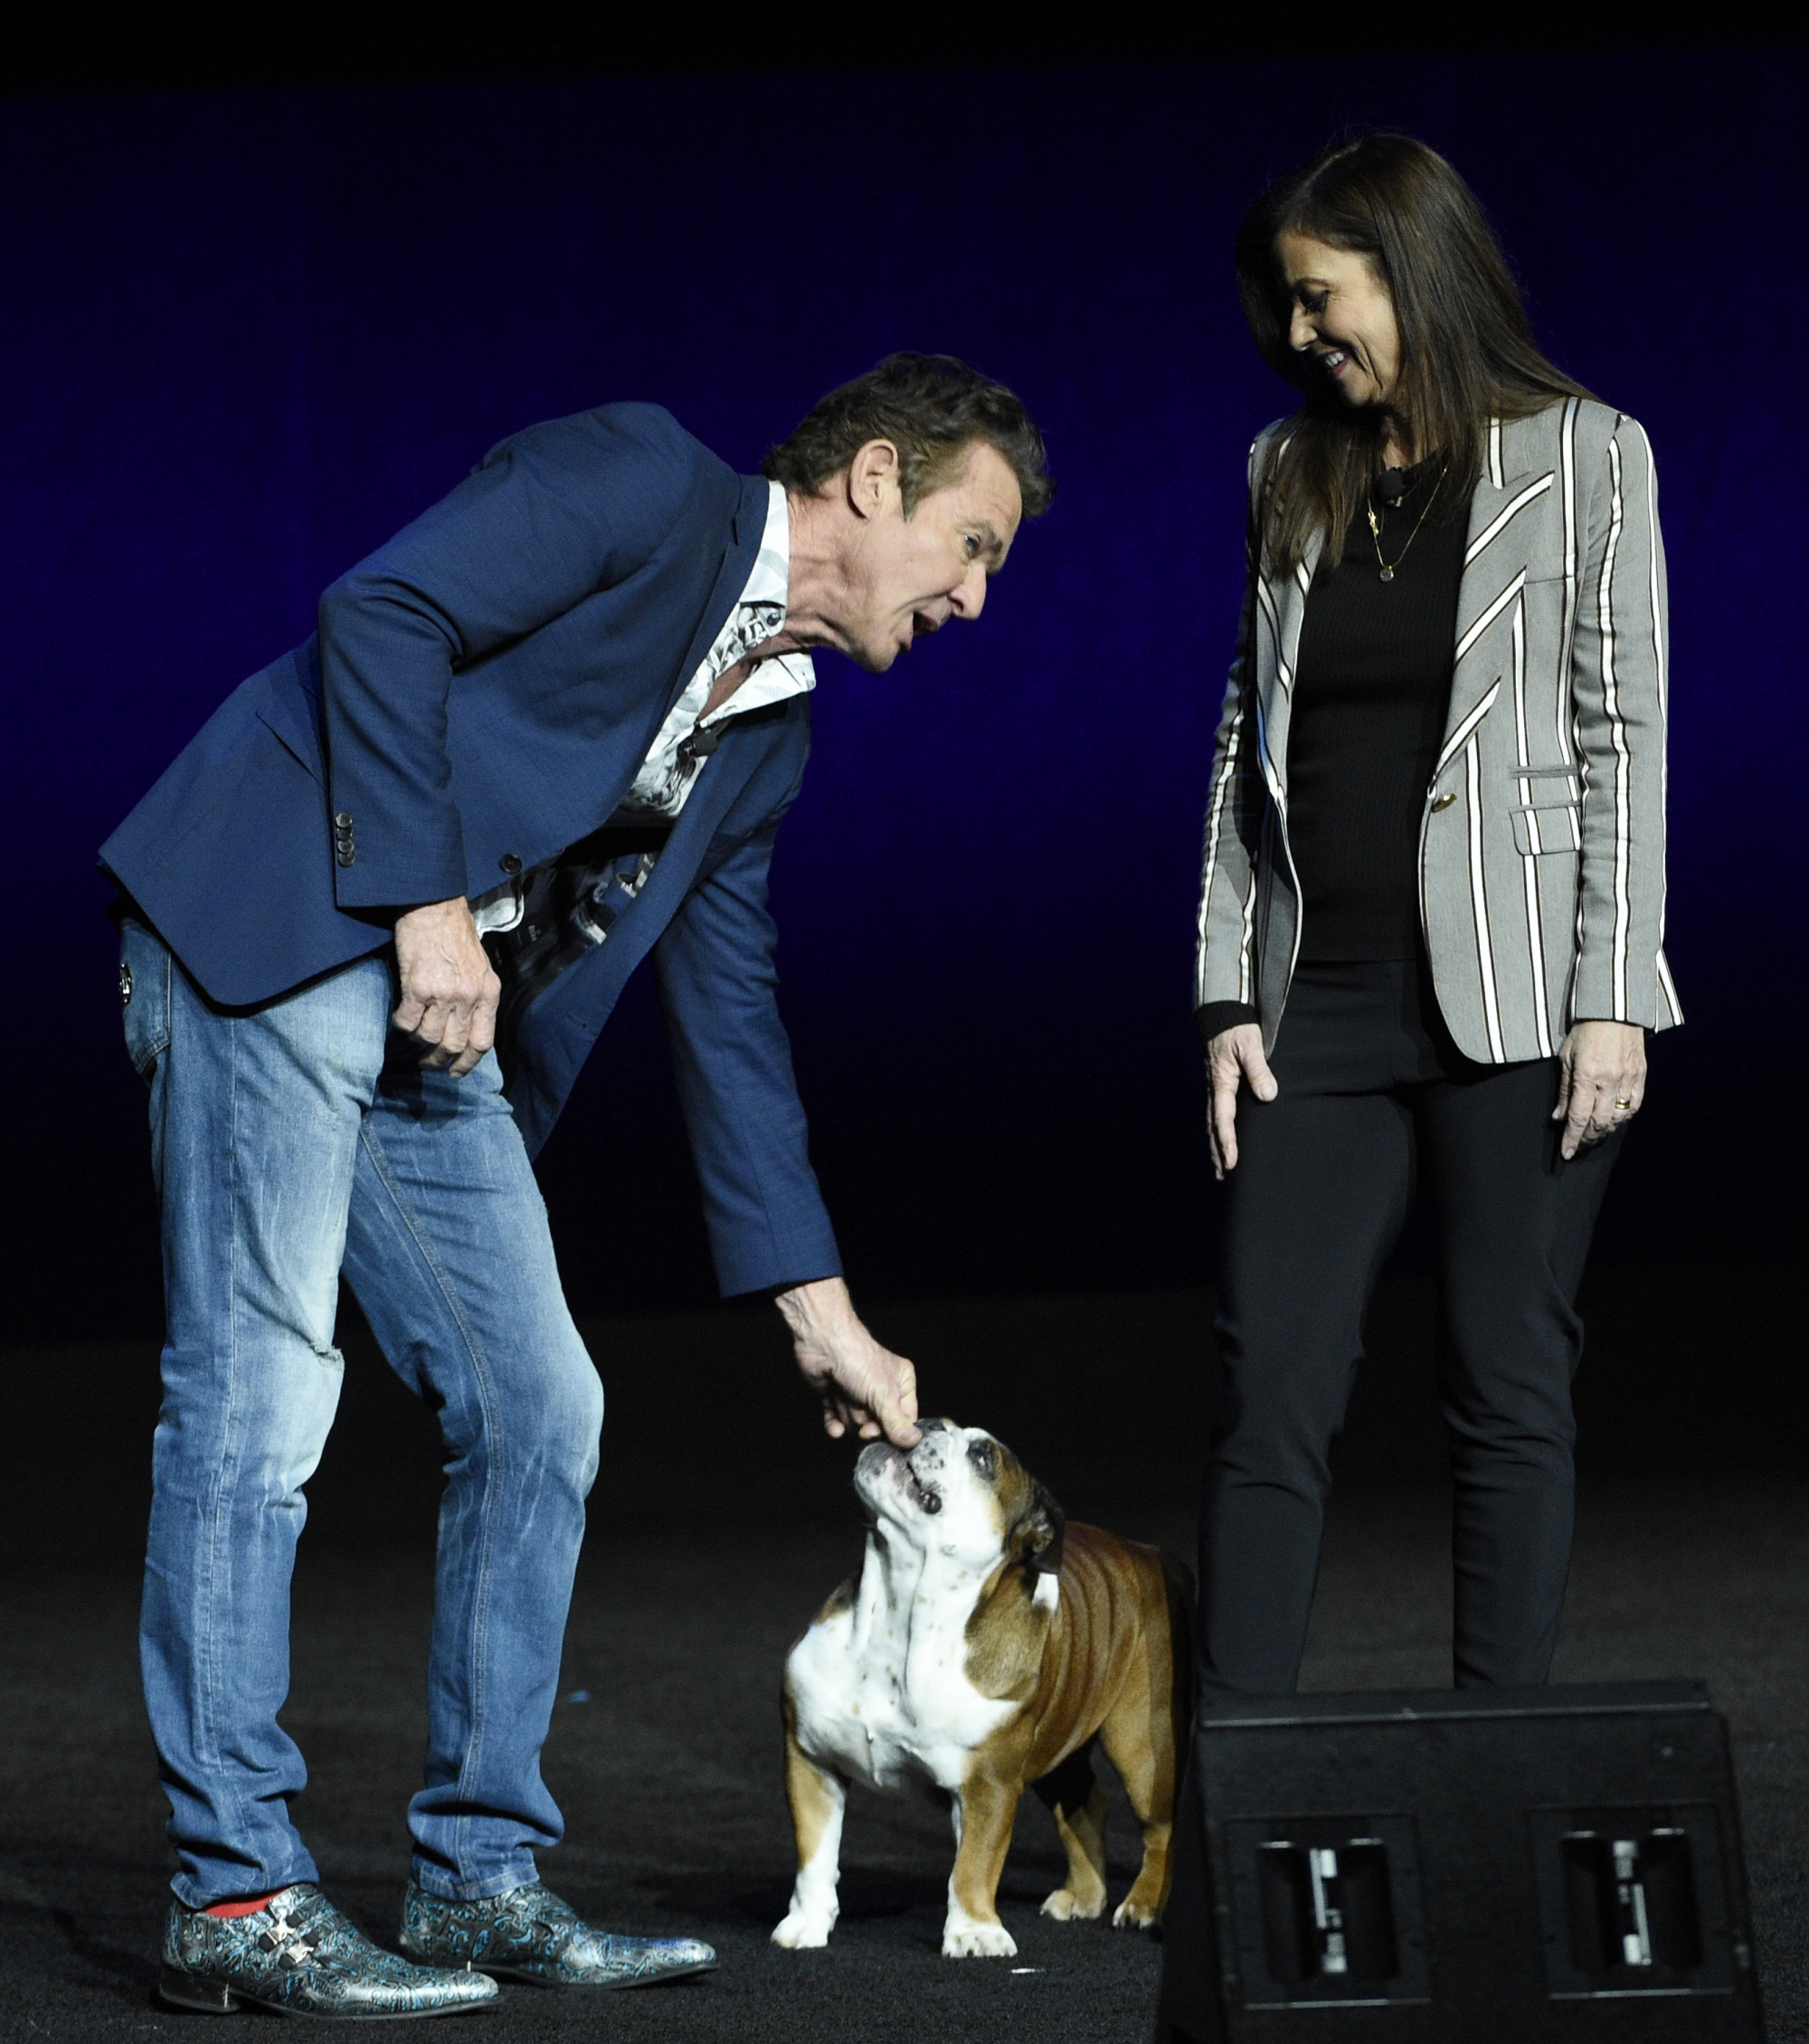 Makers Of 'A Dog's Journey' Feel Vindicated As Sequel